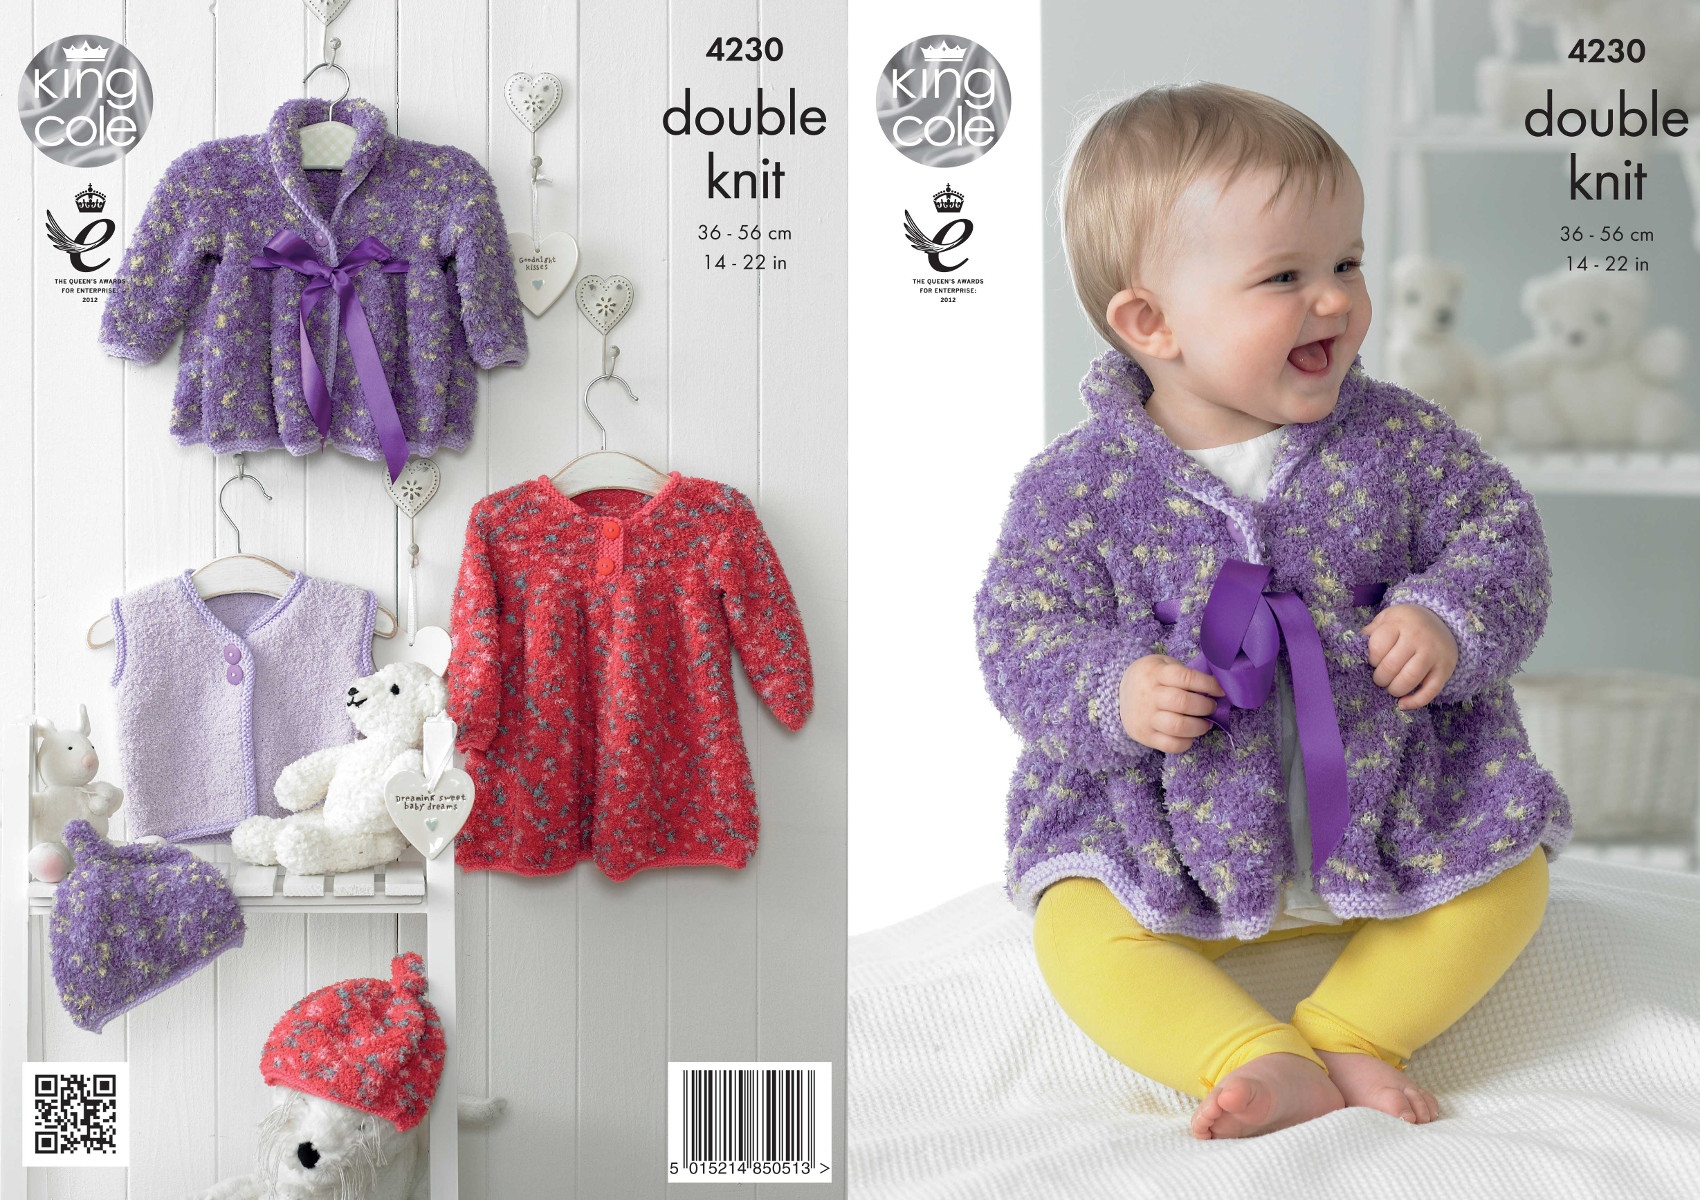 Baby clothes set knitting pattern king cole cuddles dk dress coat item description this double knitting pattern leaflet 4230 by king cole bankloansurffo Gallery